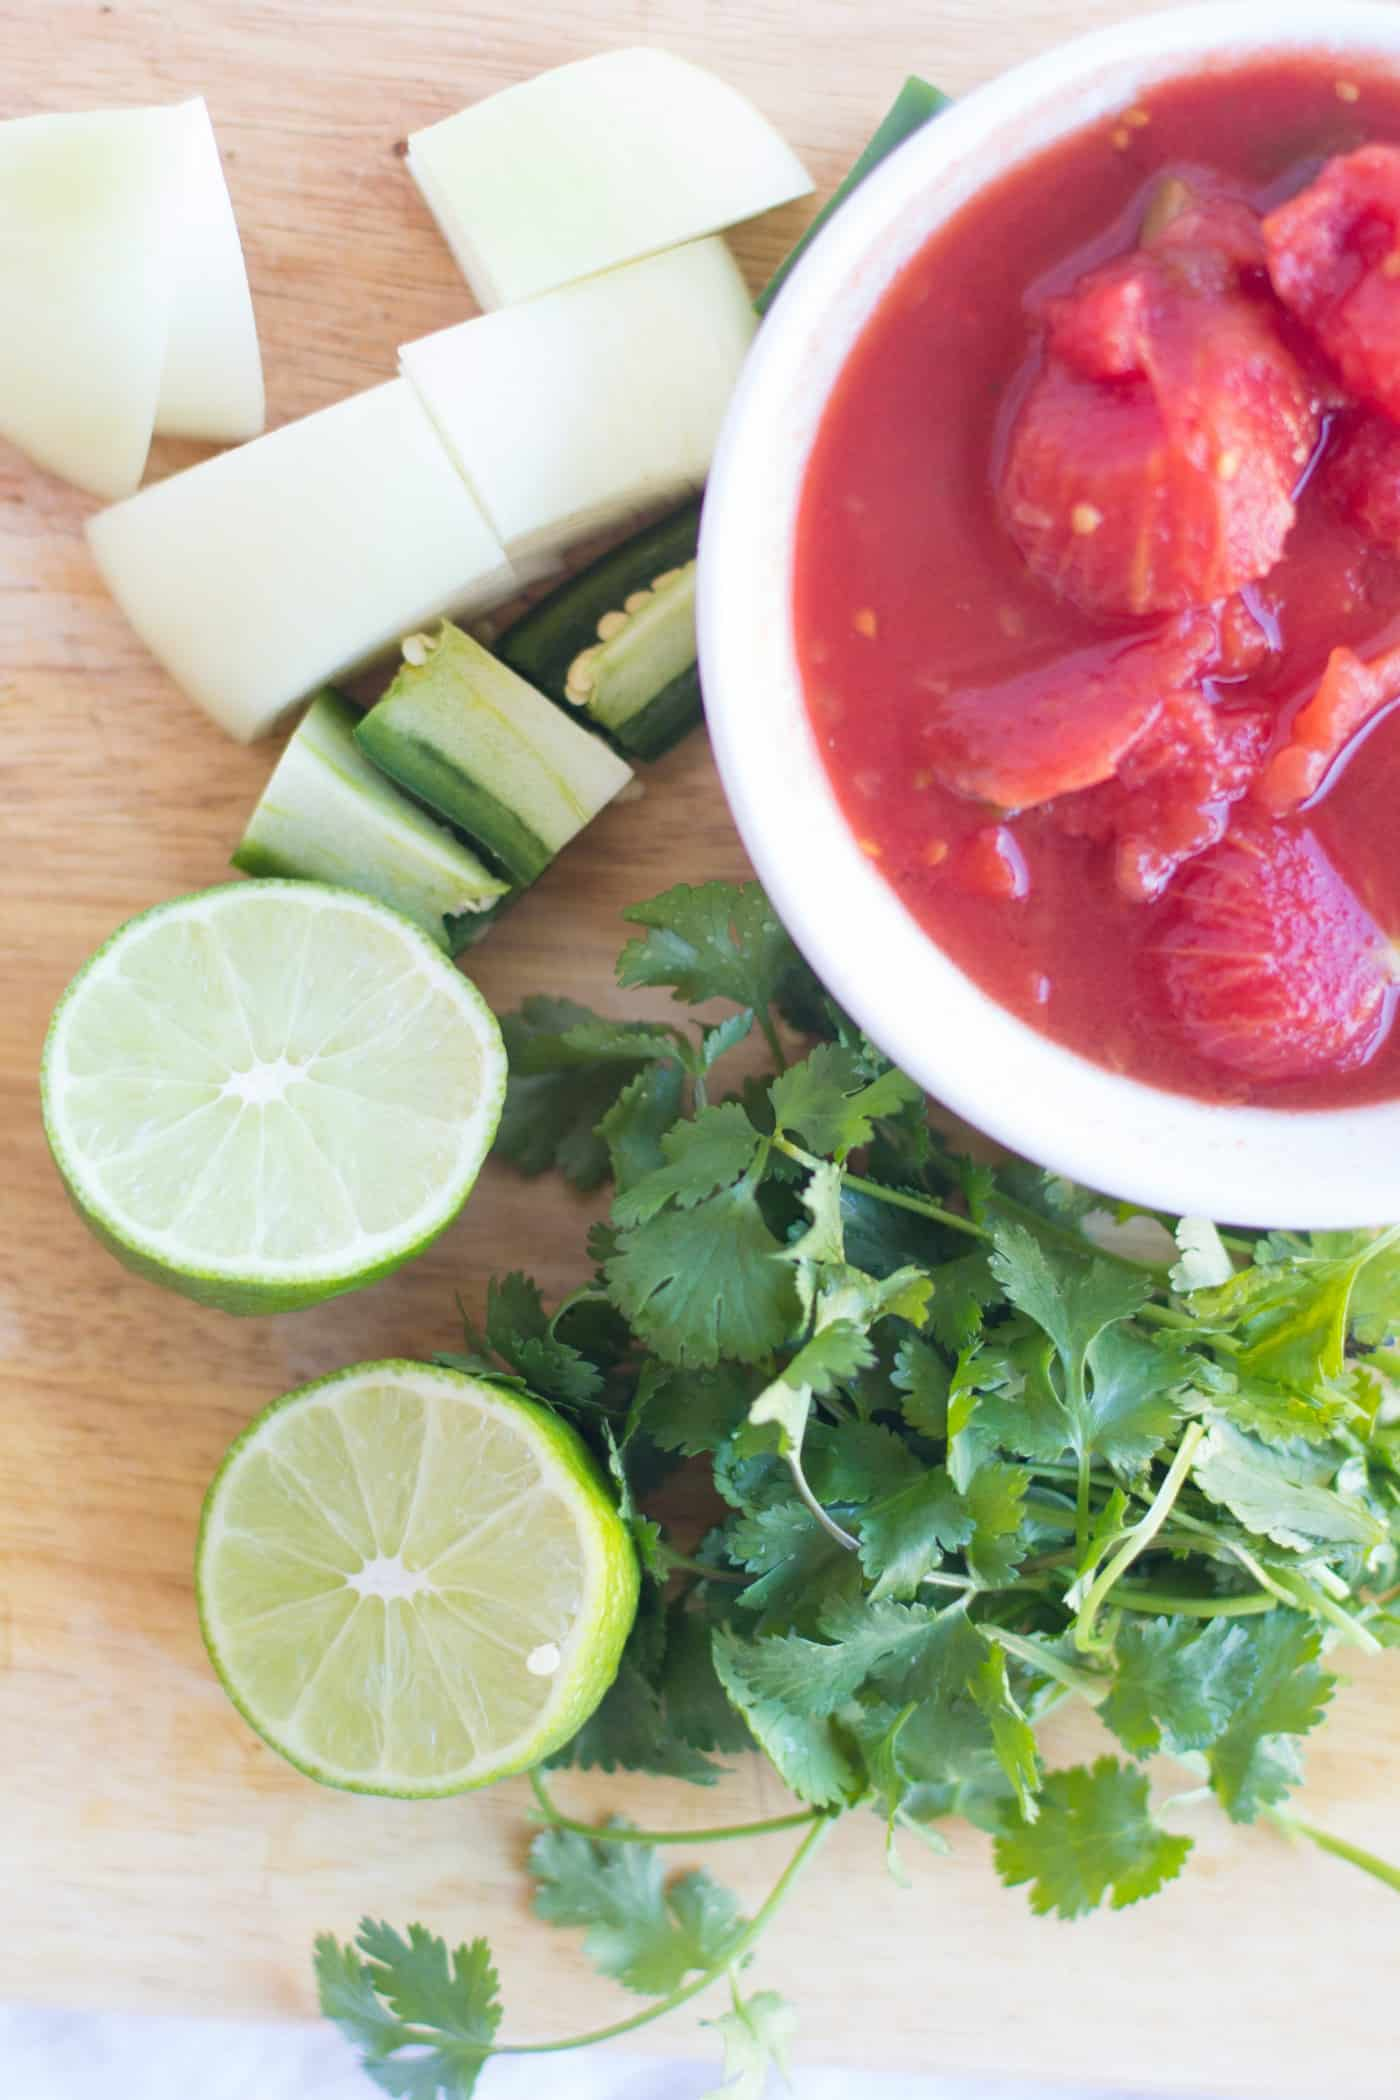 Who doesn't love chips and salsa? This tomato salsa recipe is absolutely delicious and SO easy to make in the blender. It will be a family favorite!